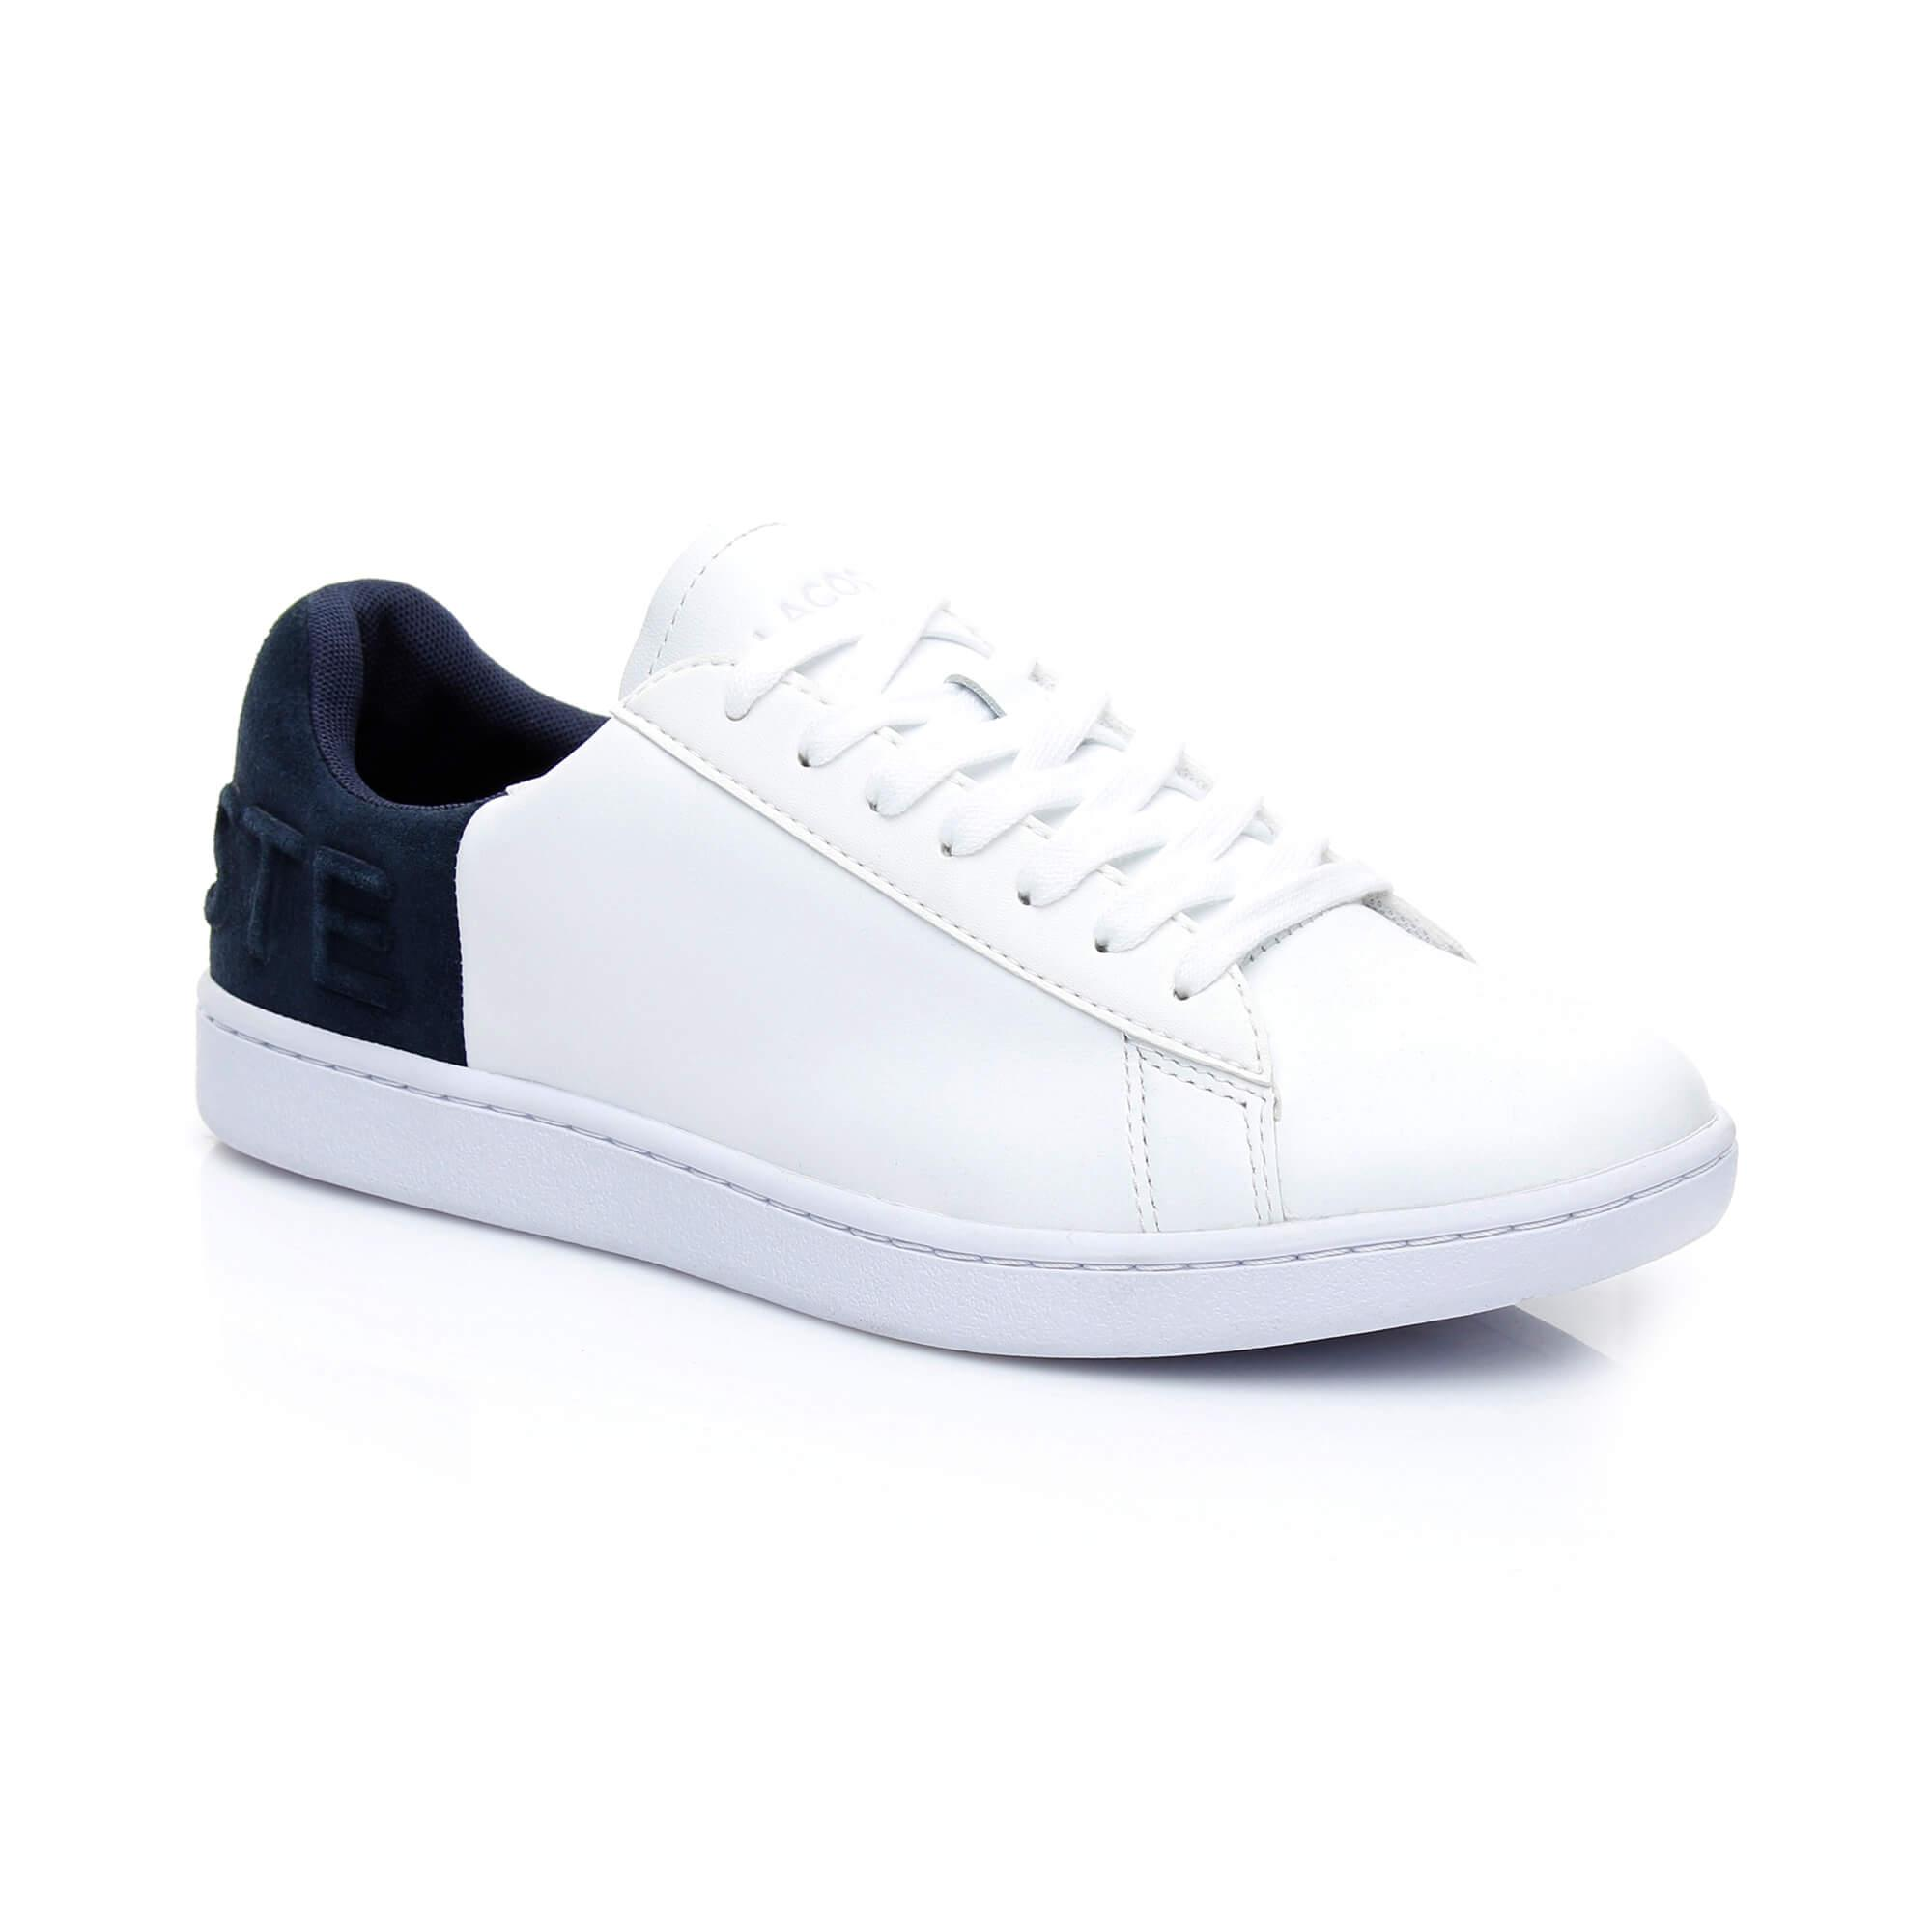 9ab36aa6 Lacoste Women's Carnaby Evo 318 3 Leather Sneaker 736SPW0011 042 ...